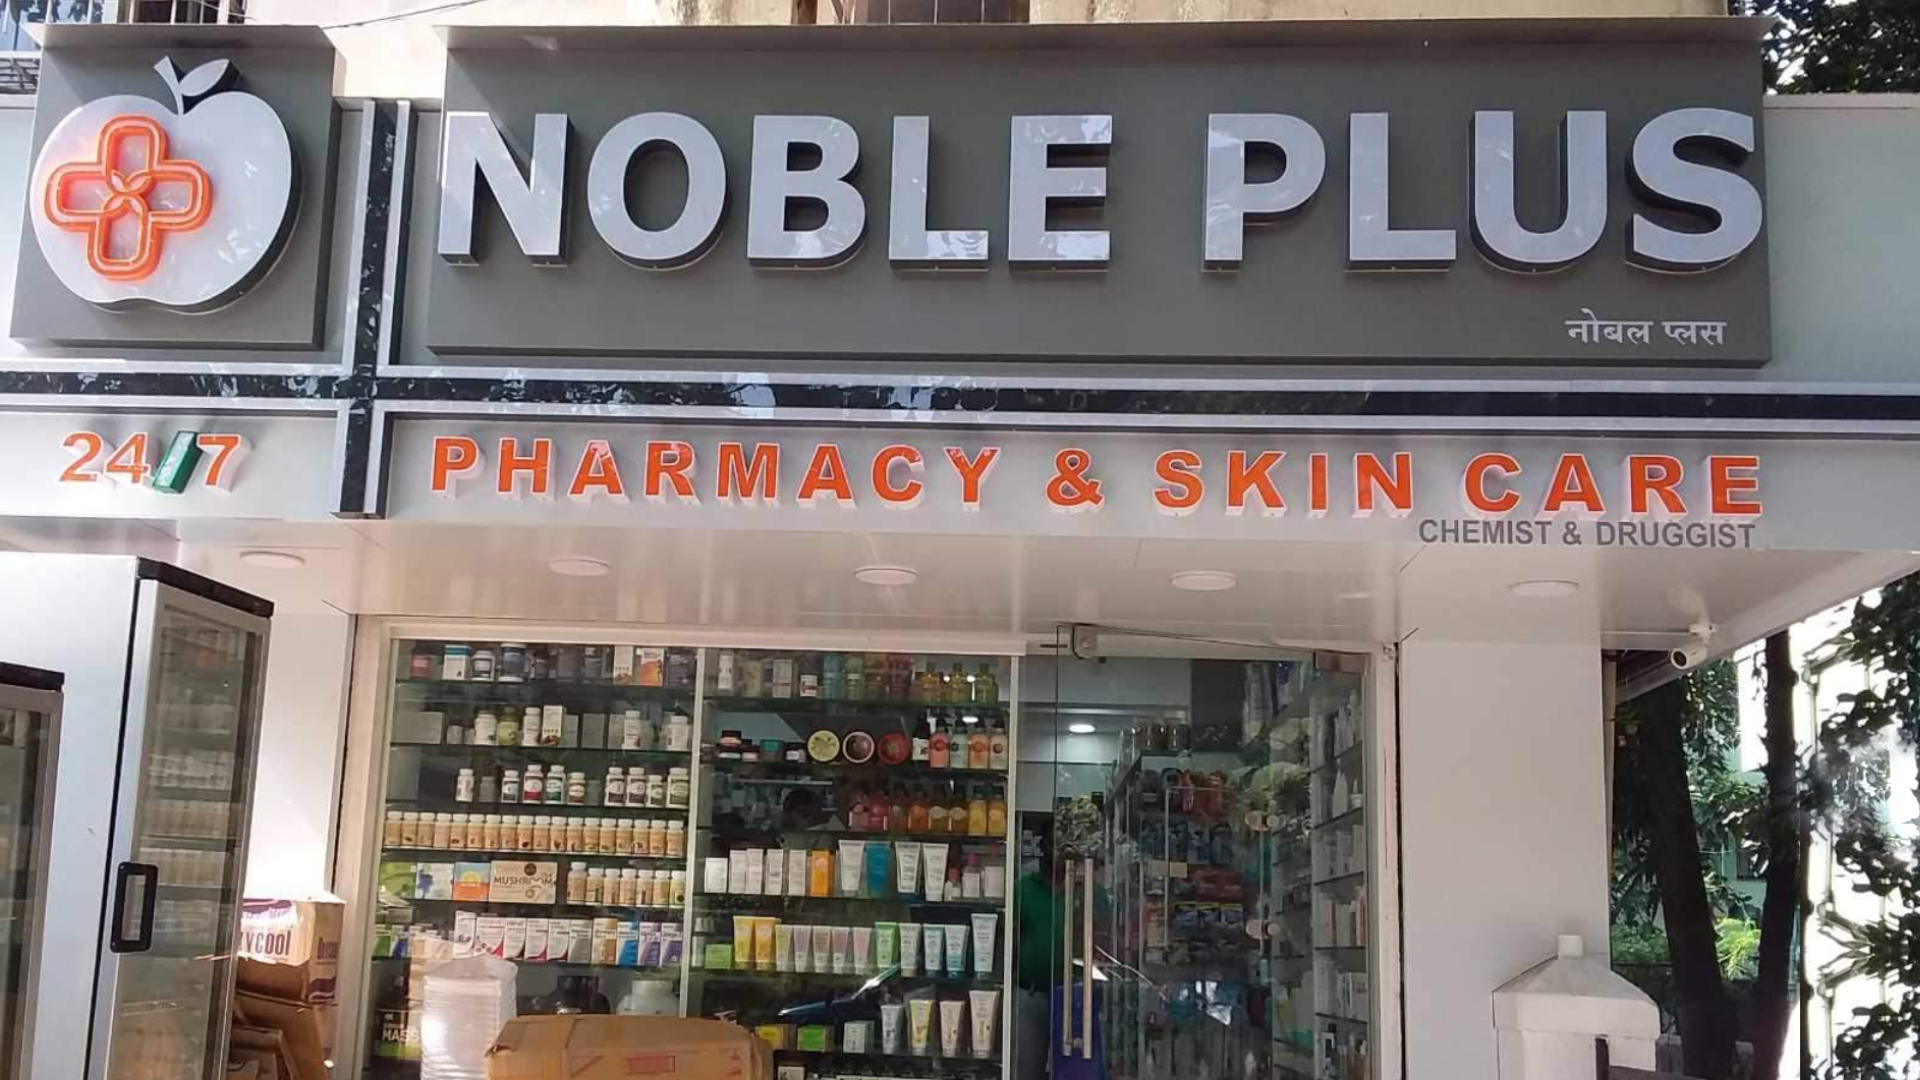 Welcome to the Noble Plus